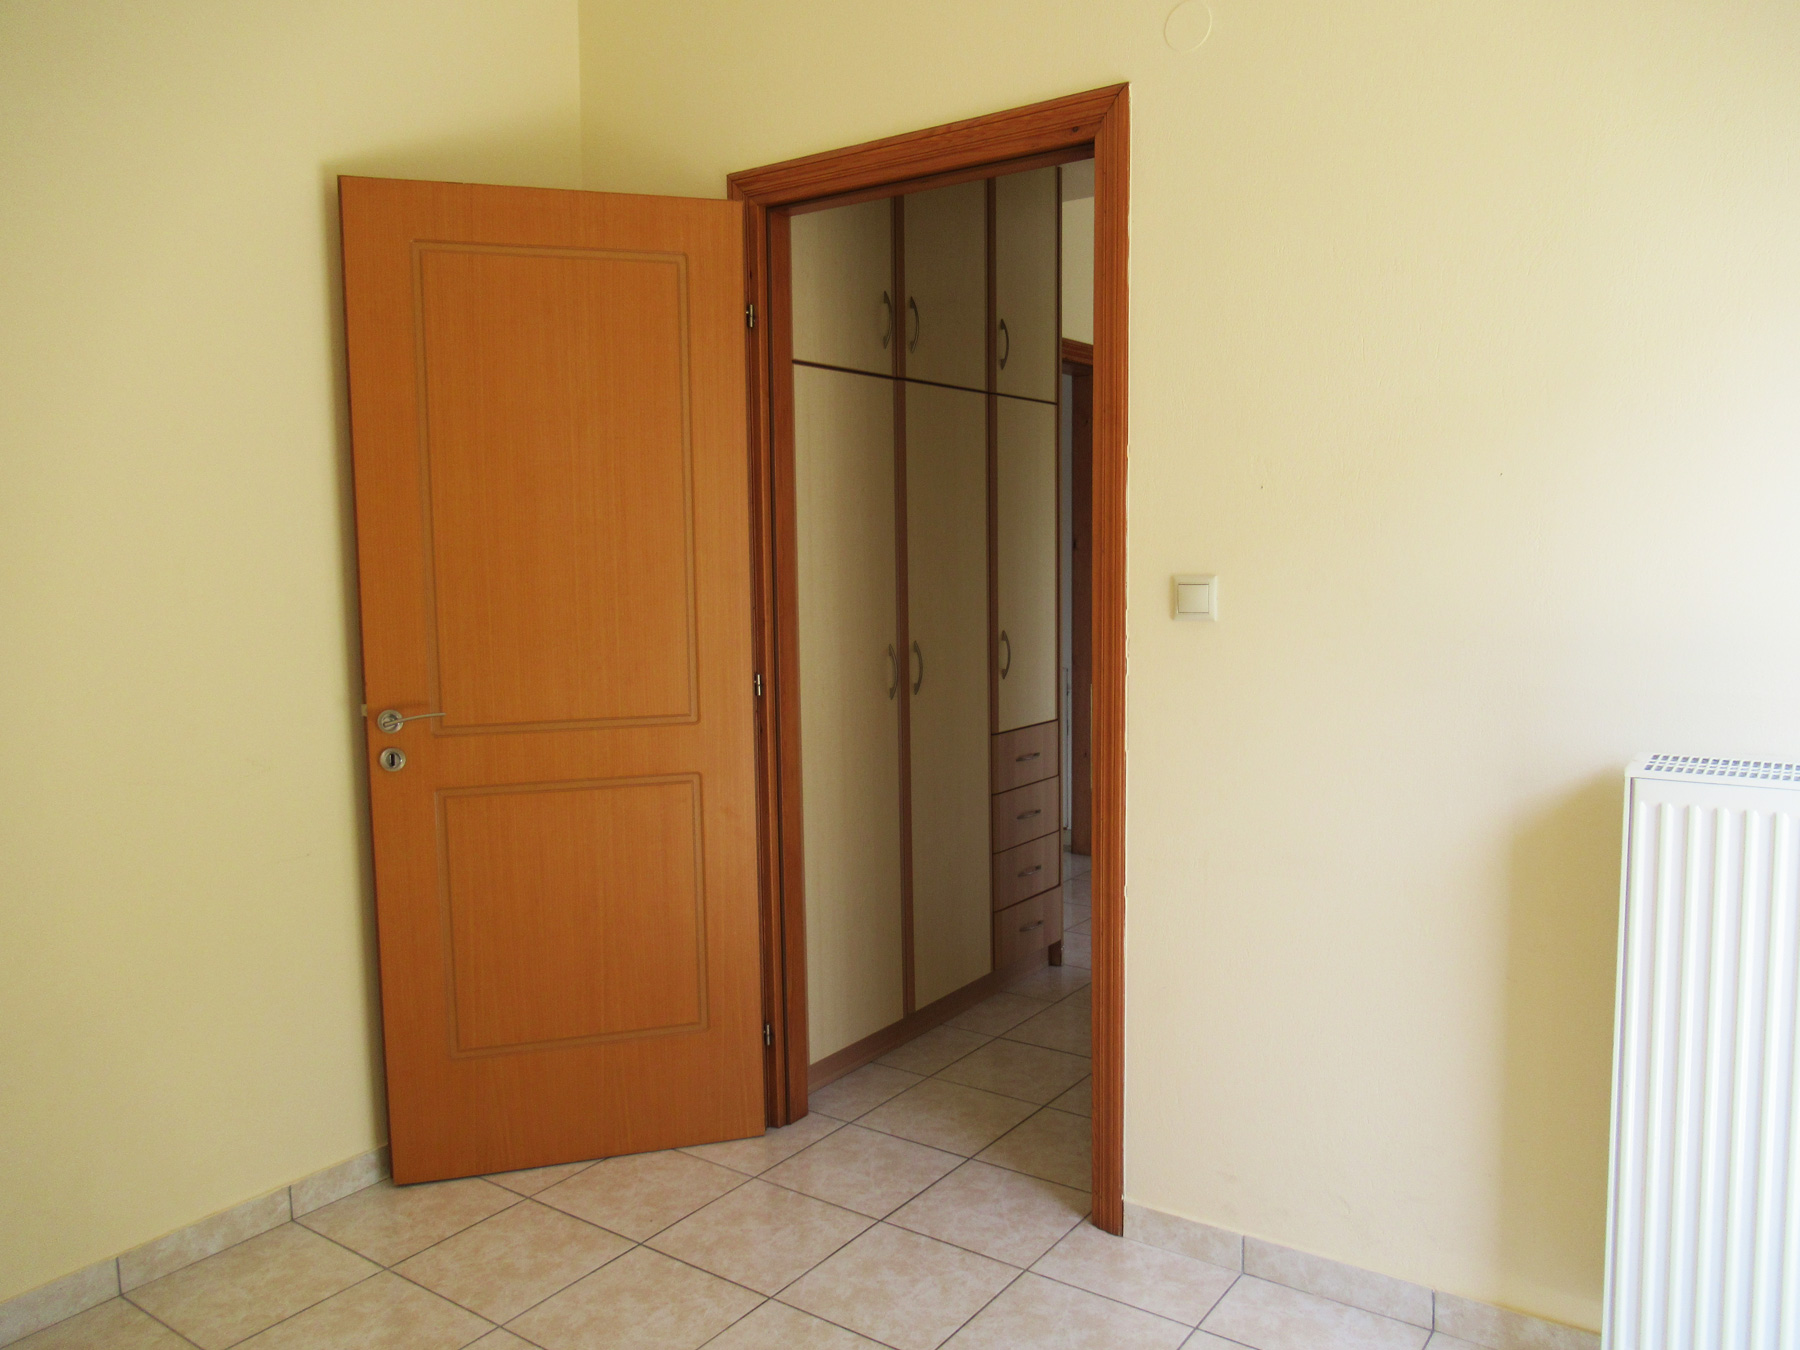 For rent sunny 1 bedroom studio of 35 sq.m. on the 1st floor in the center of Ioannina